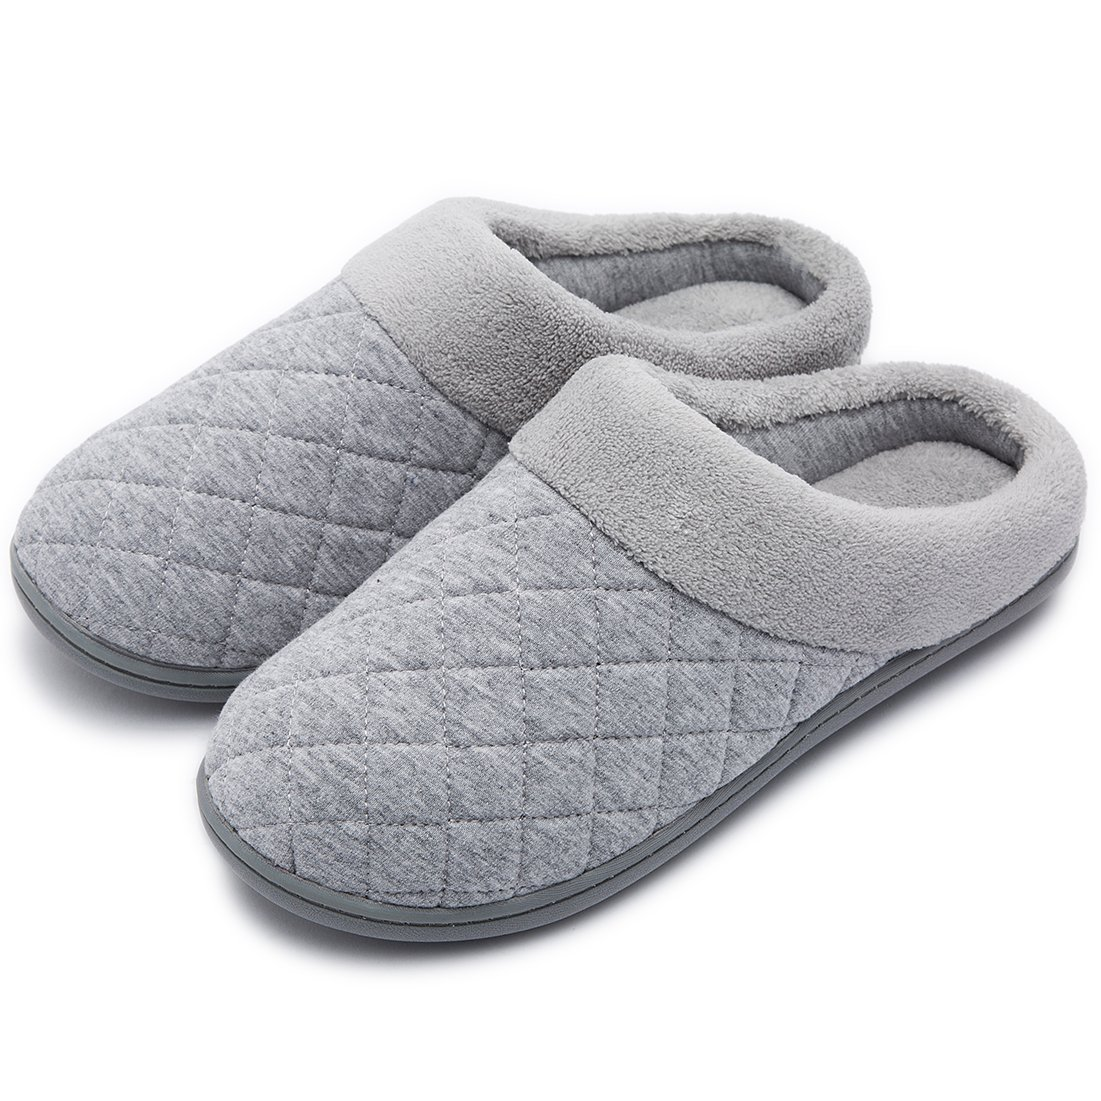 Women's Comfort Quilted Memory Foam Fleece Lining House Slippers Slip On Clog House Shoes (Medium / 7-8 B(M) US, Gray)